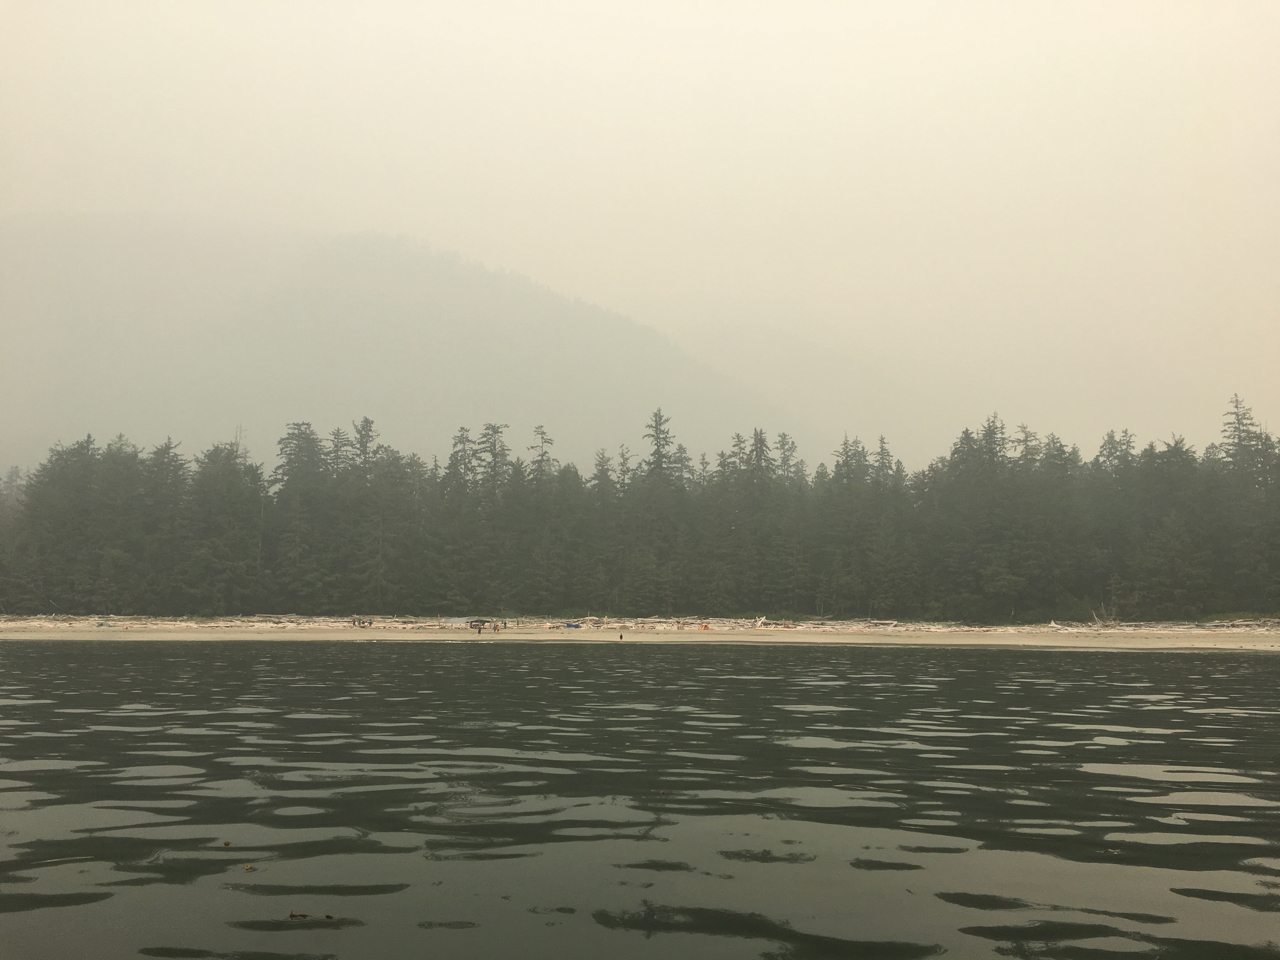 - British Columbia, Washington, Oregon, California…all familiar with the orange haze of smoke.